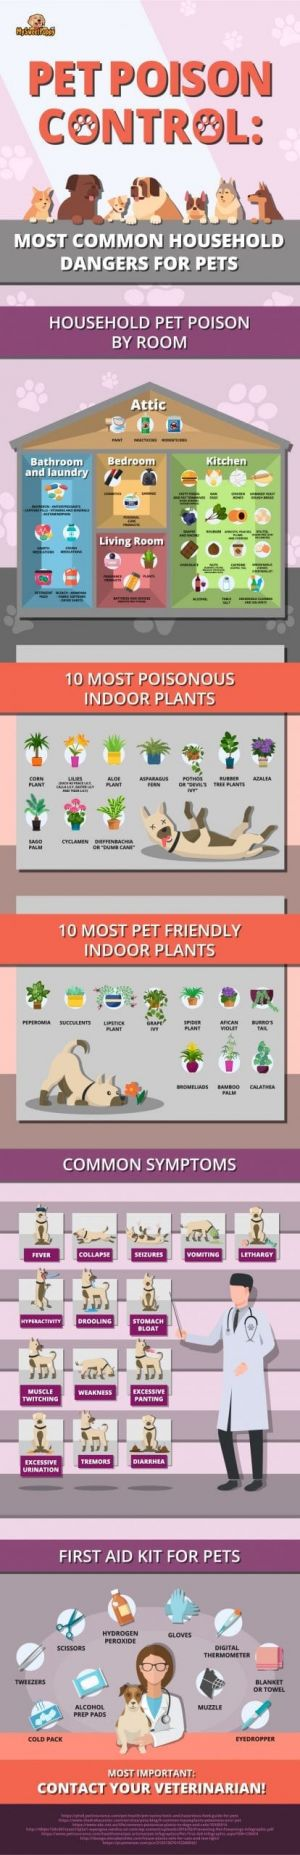 Improve your dog's diet to avoid common health conditions: 3 homemade food ideas